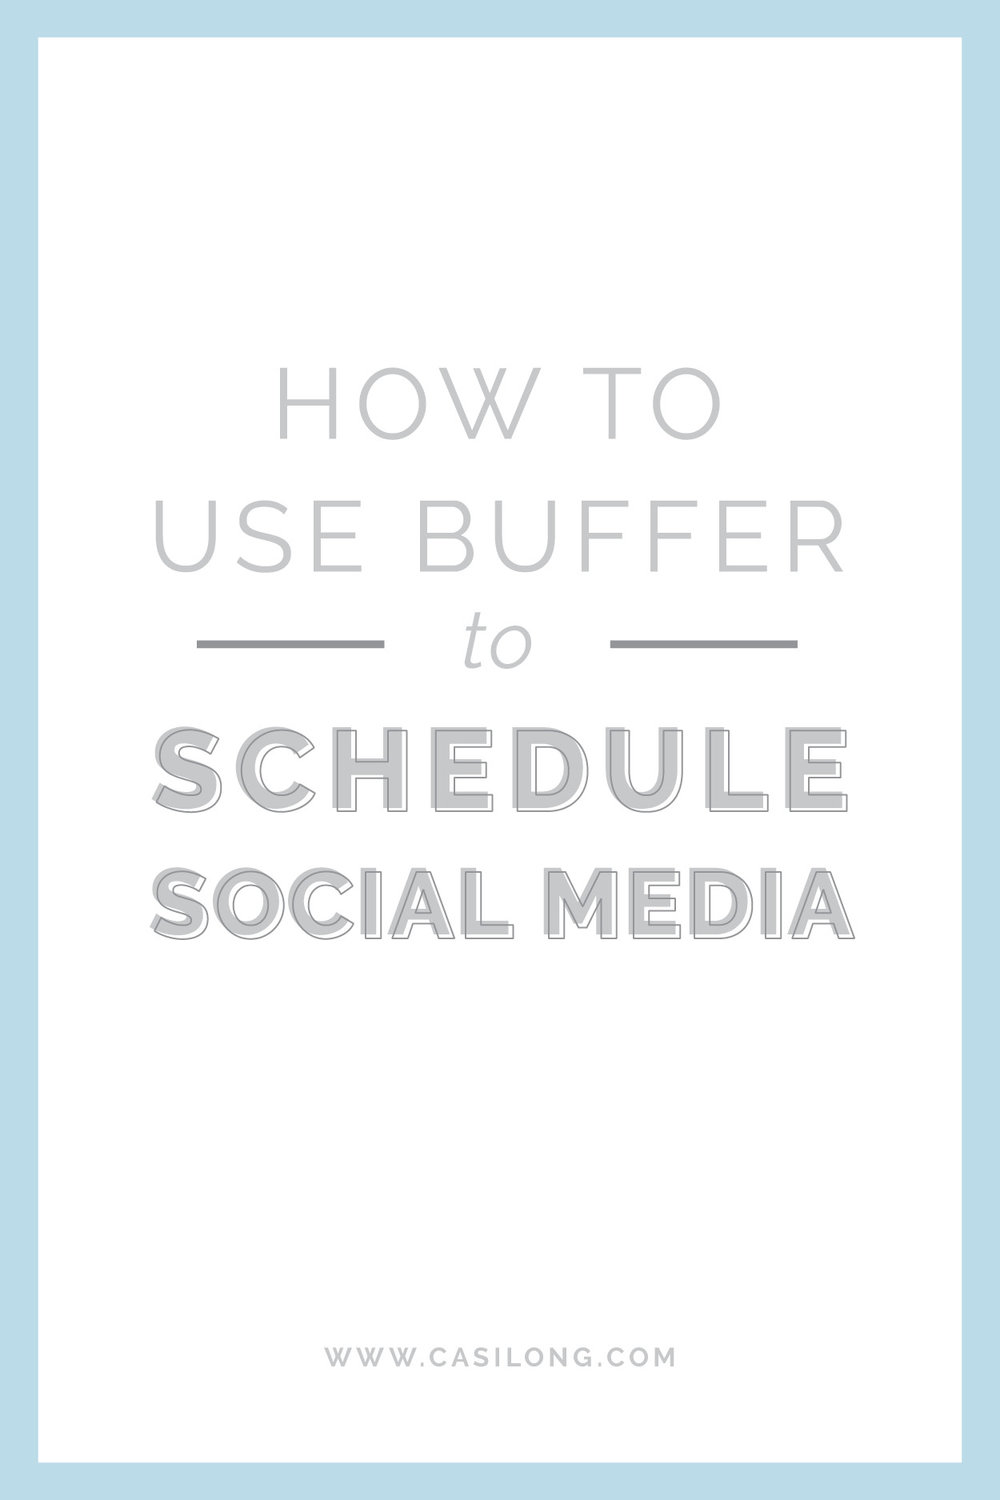 How to use buffer to schedule social media | casilong.com #casilongdesign #fearlesspursuit